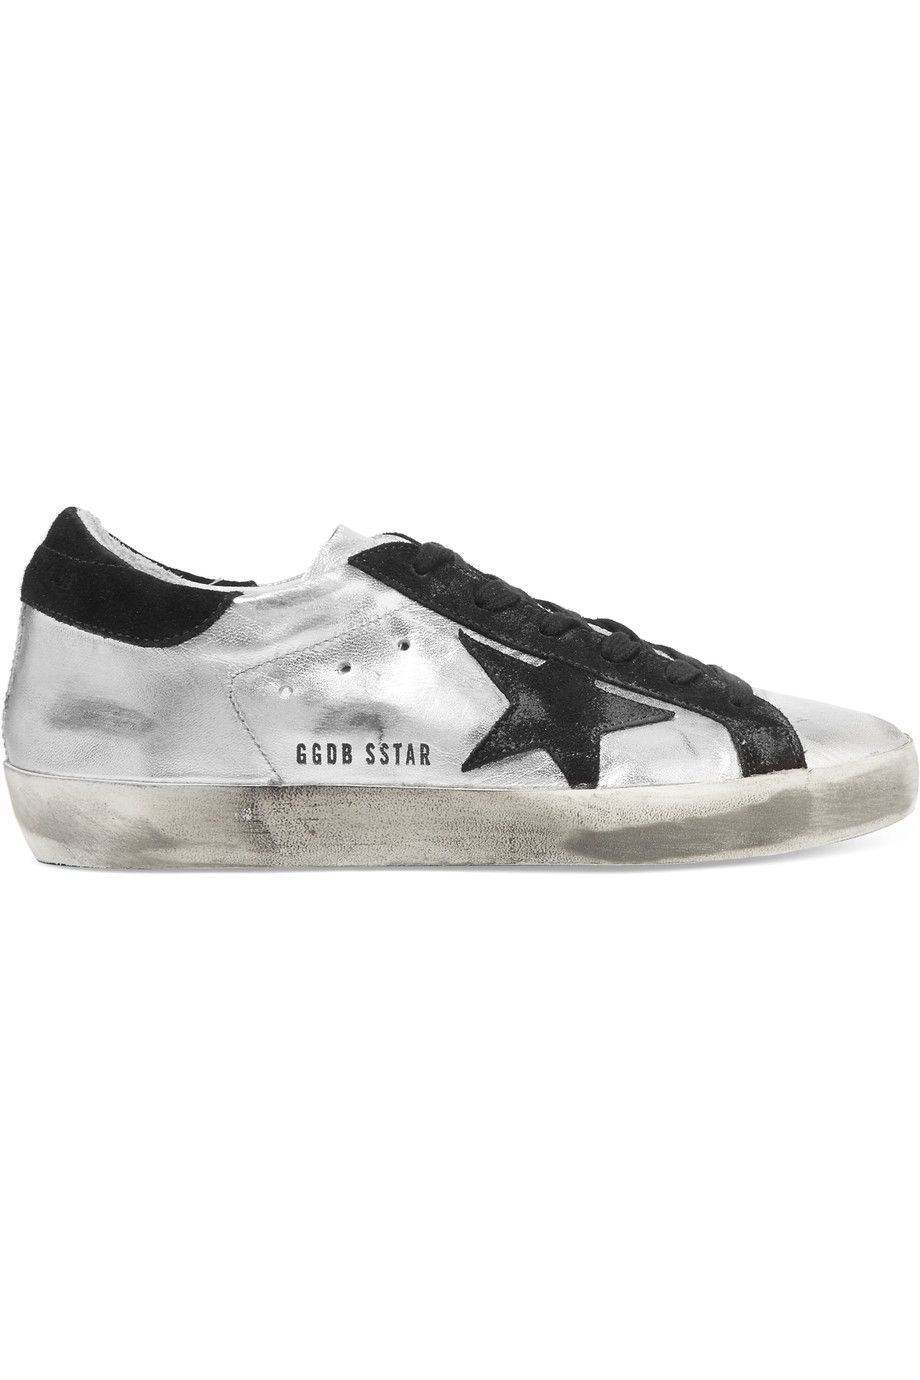 Superstar Distressed Metallic Leather And Suede Sneakers - Silver Golden Goose B9HYyNM